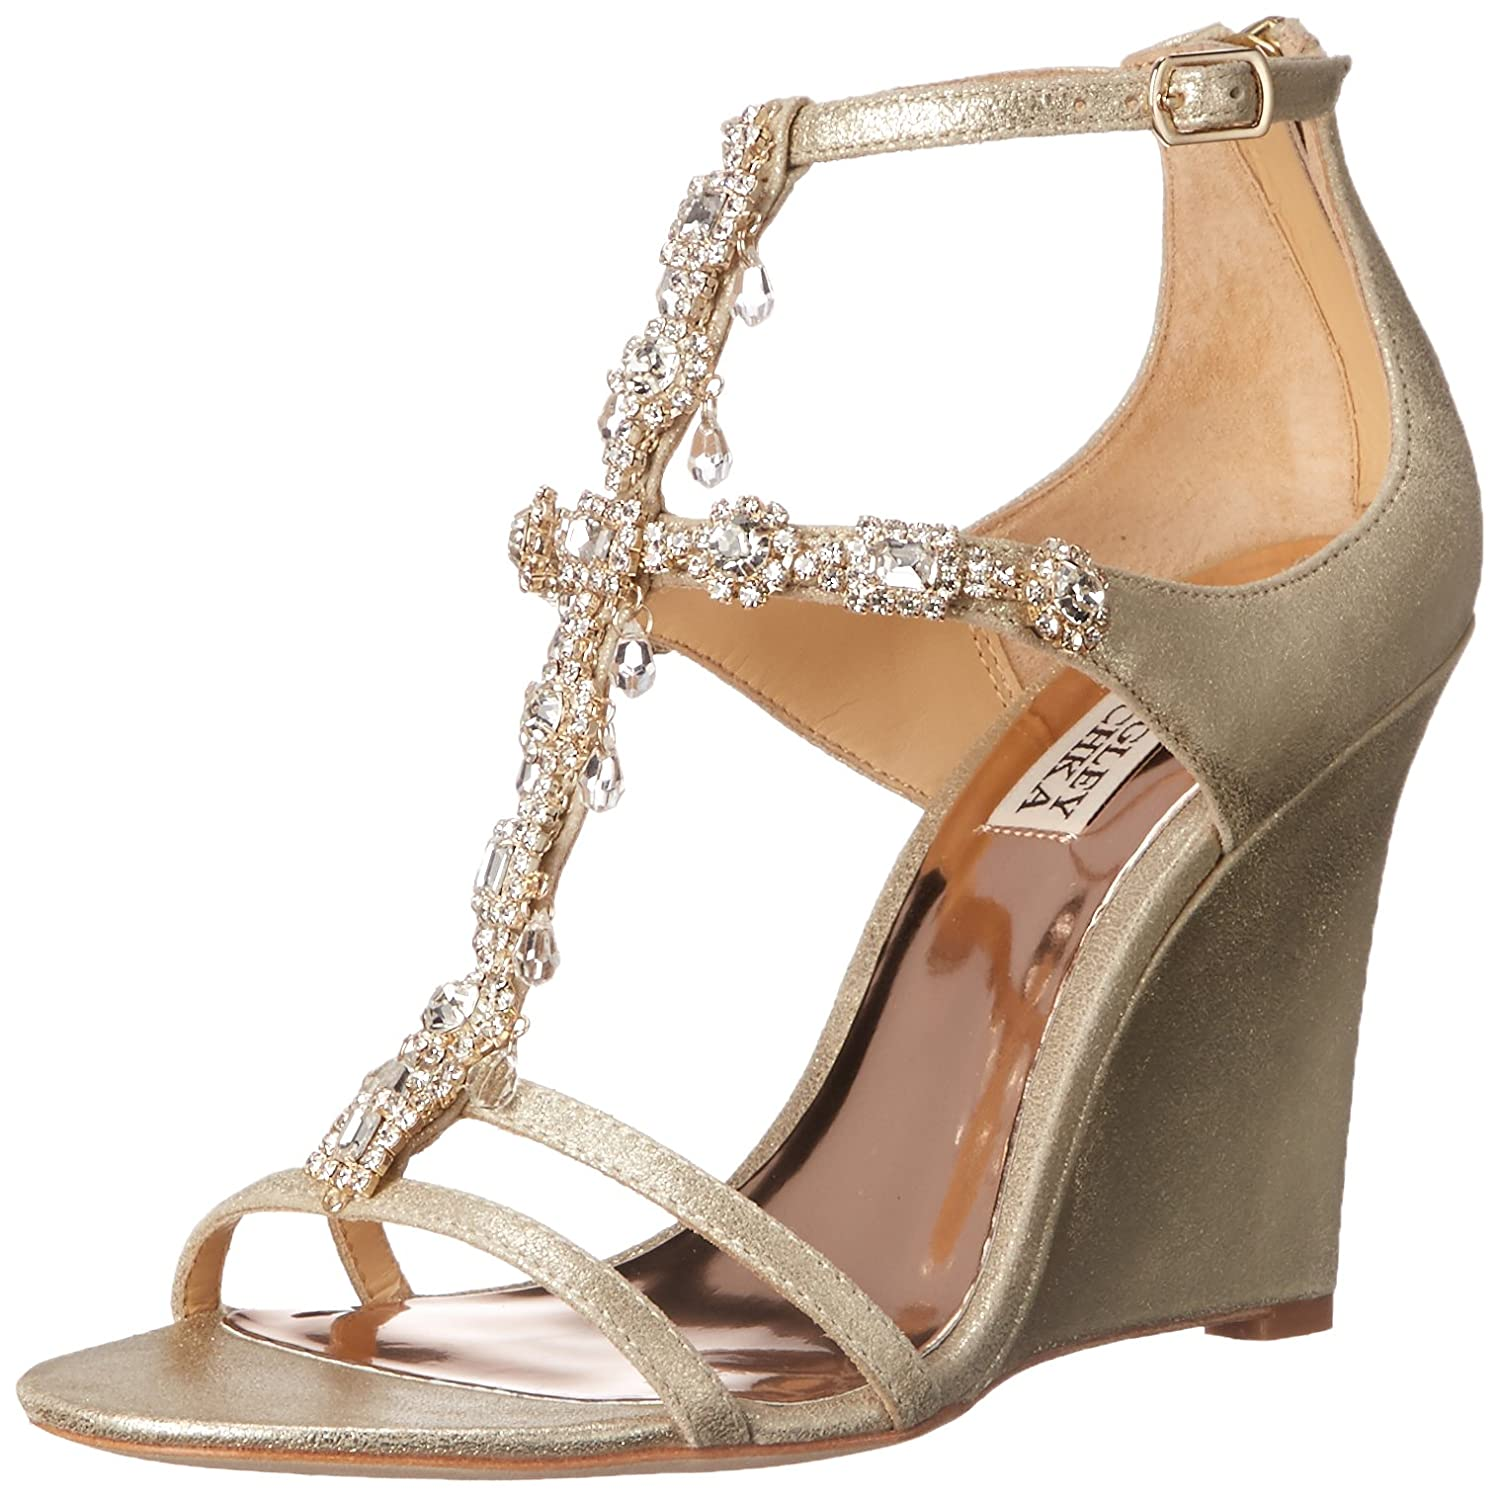 Badgley Mischka Women's Cashet II Wedge Sandal